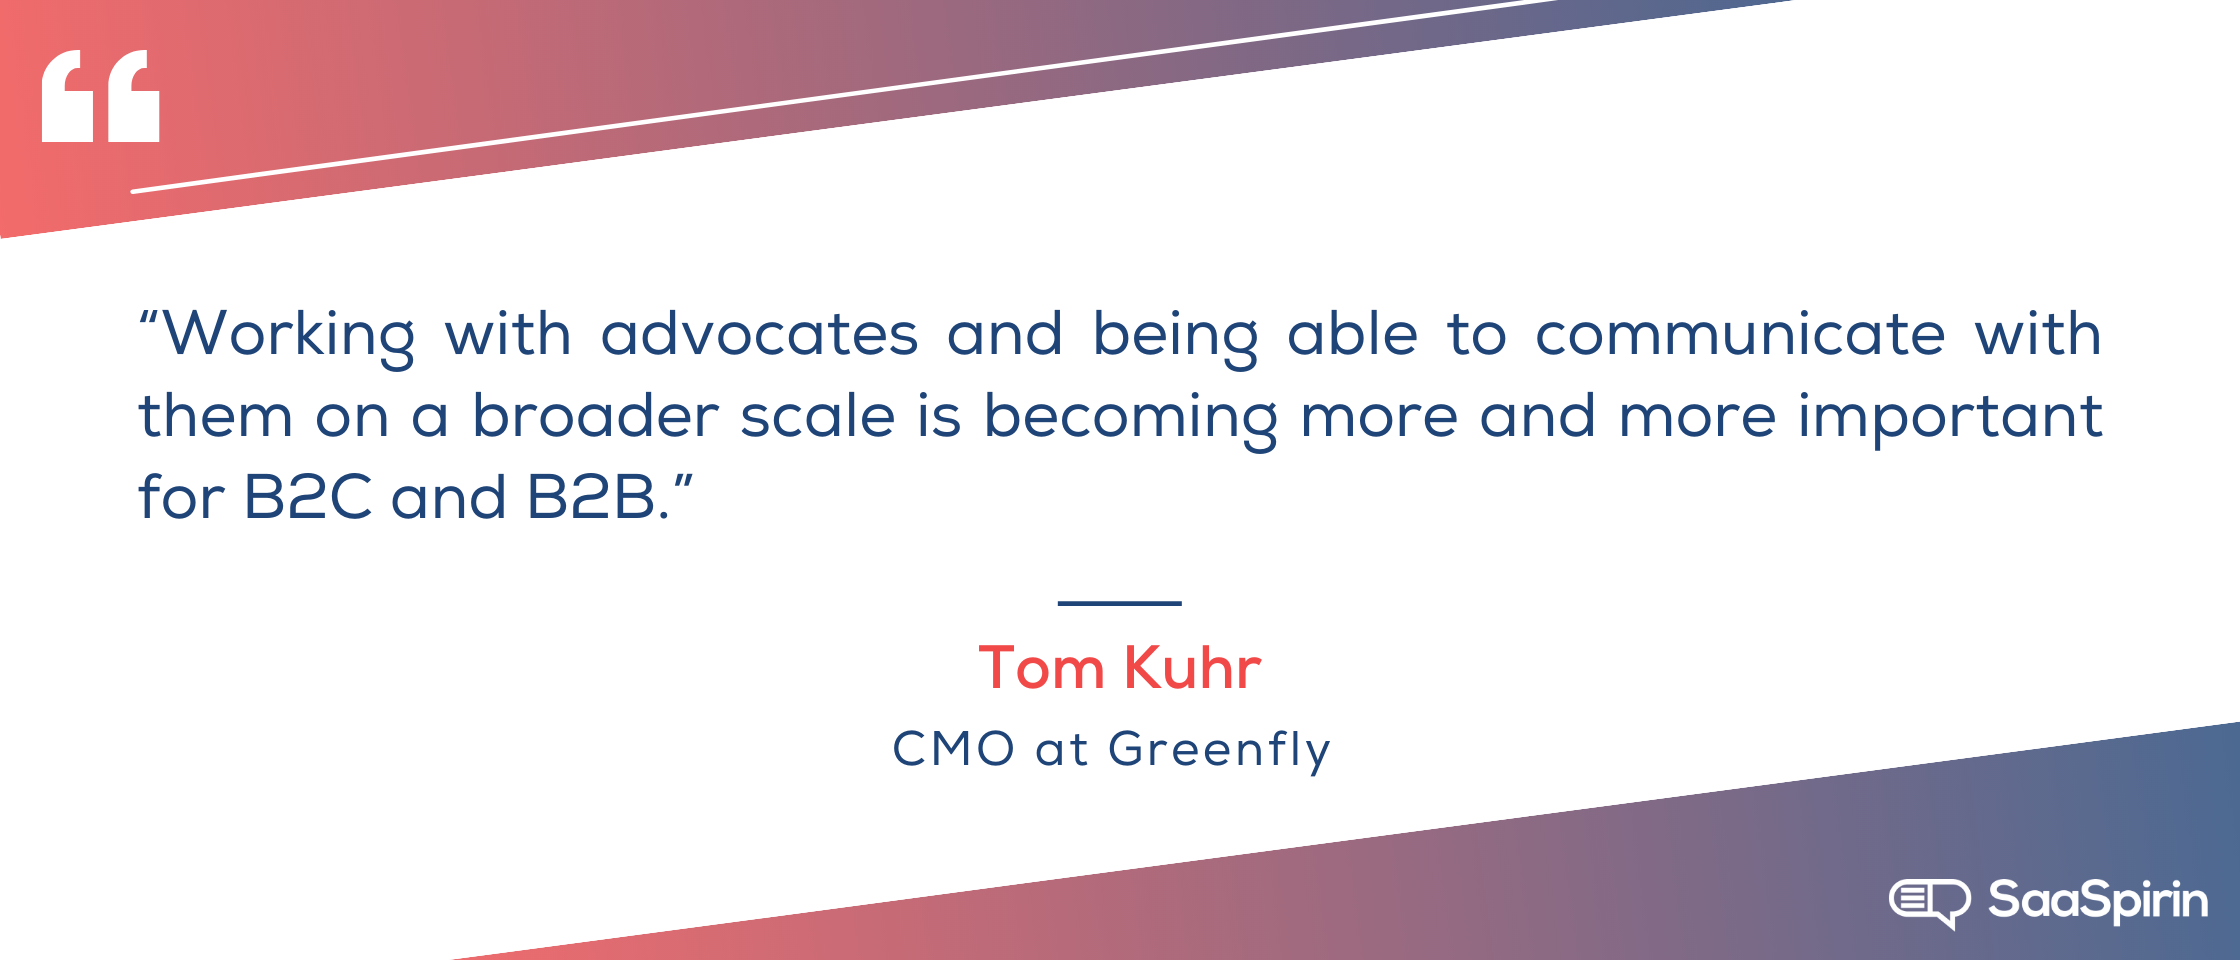 Working-with-advocates-and-being-able-to-communicate-with-them-on-a broader-scale-is-becoming-more-and-more-important-for-B2C-and-B2B.png